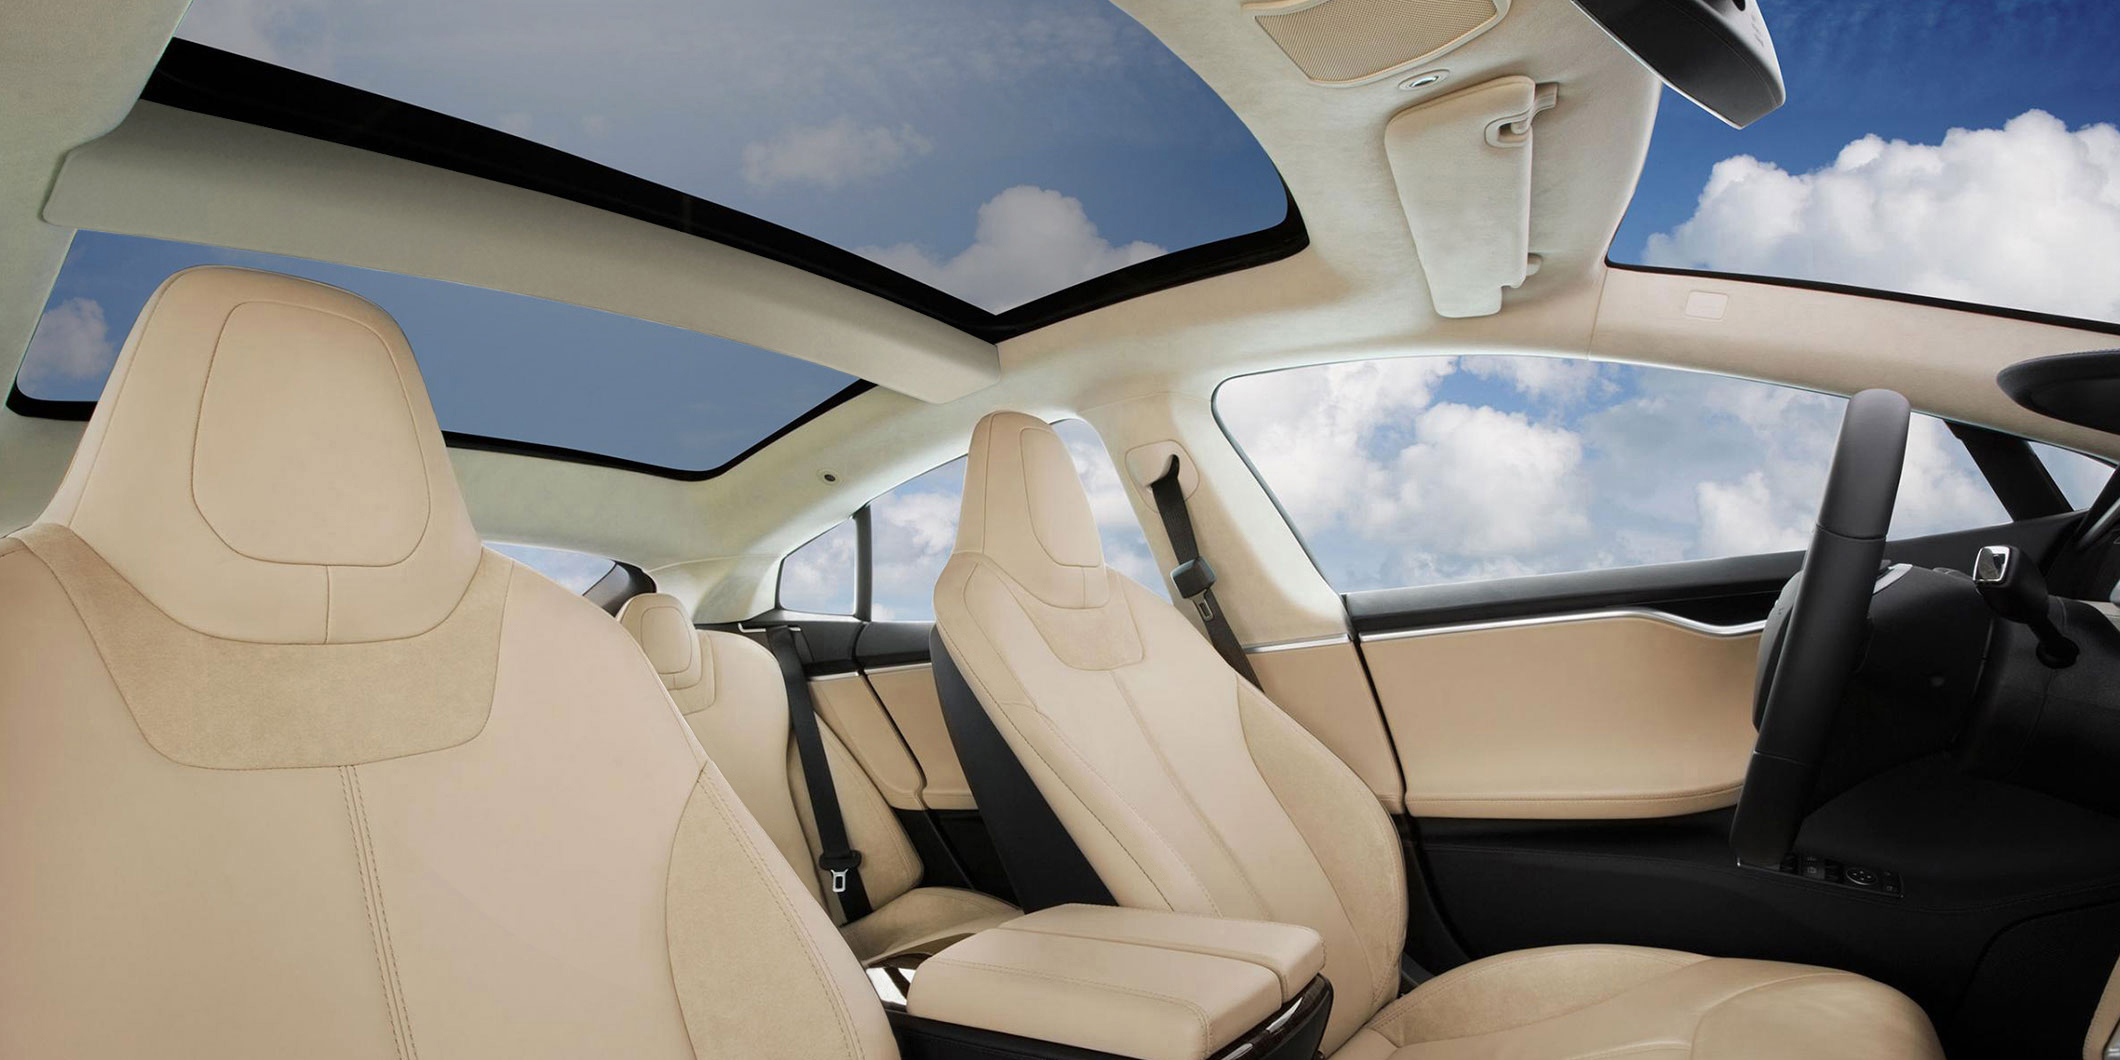 Tesla S85D Glass Panoraic Roof